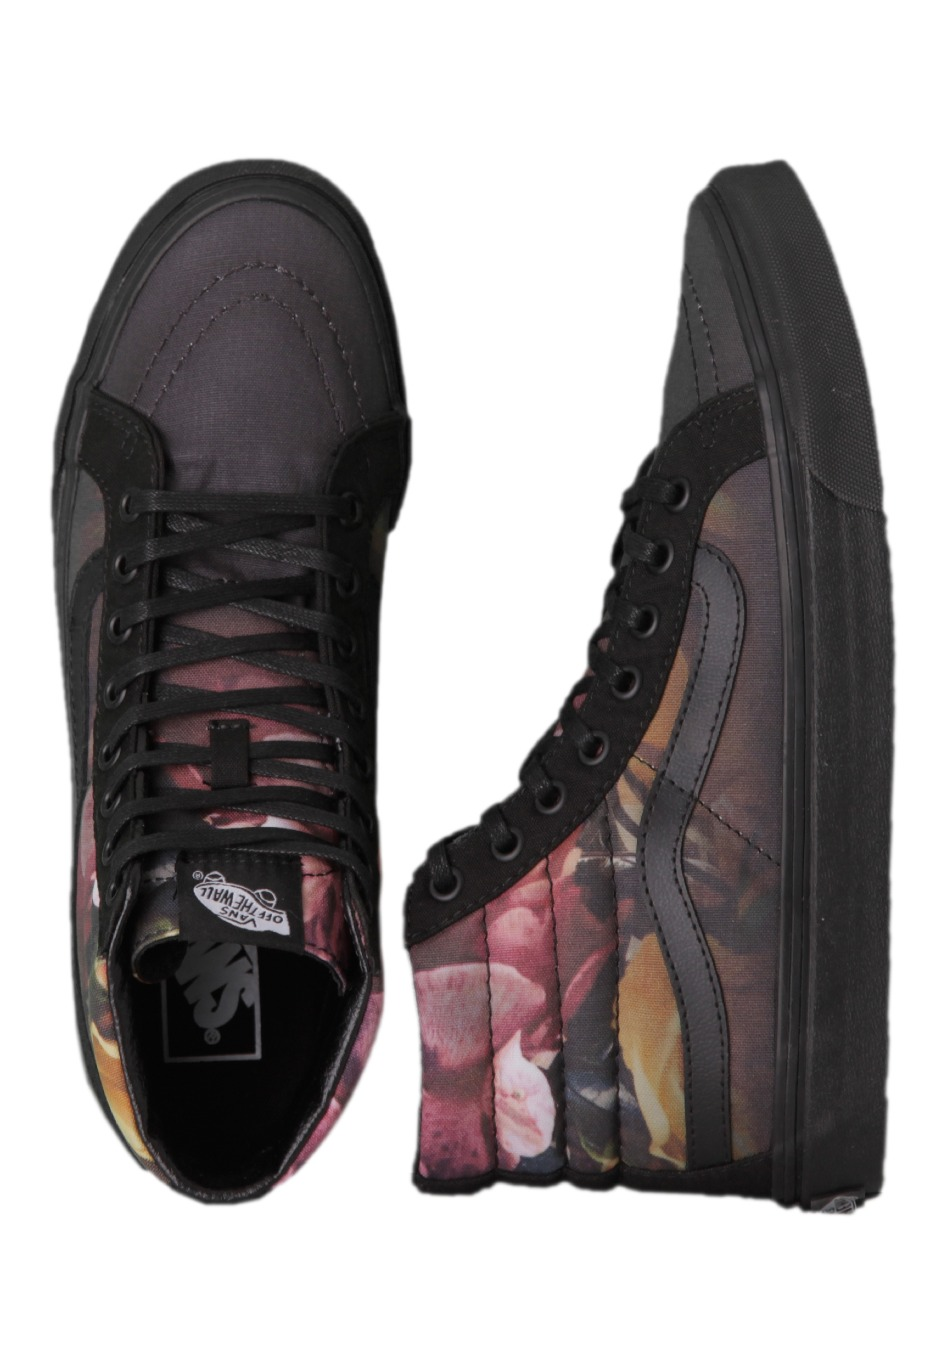 af0174c5eea503 Vans - Sk8-Hi Slim Ombre Floral Black Black - Girl Shoes - Impericon.com UK